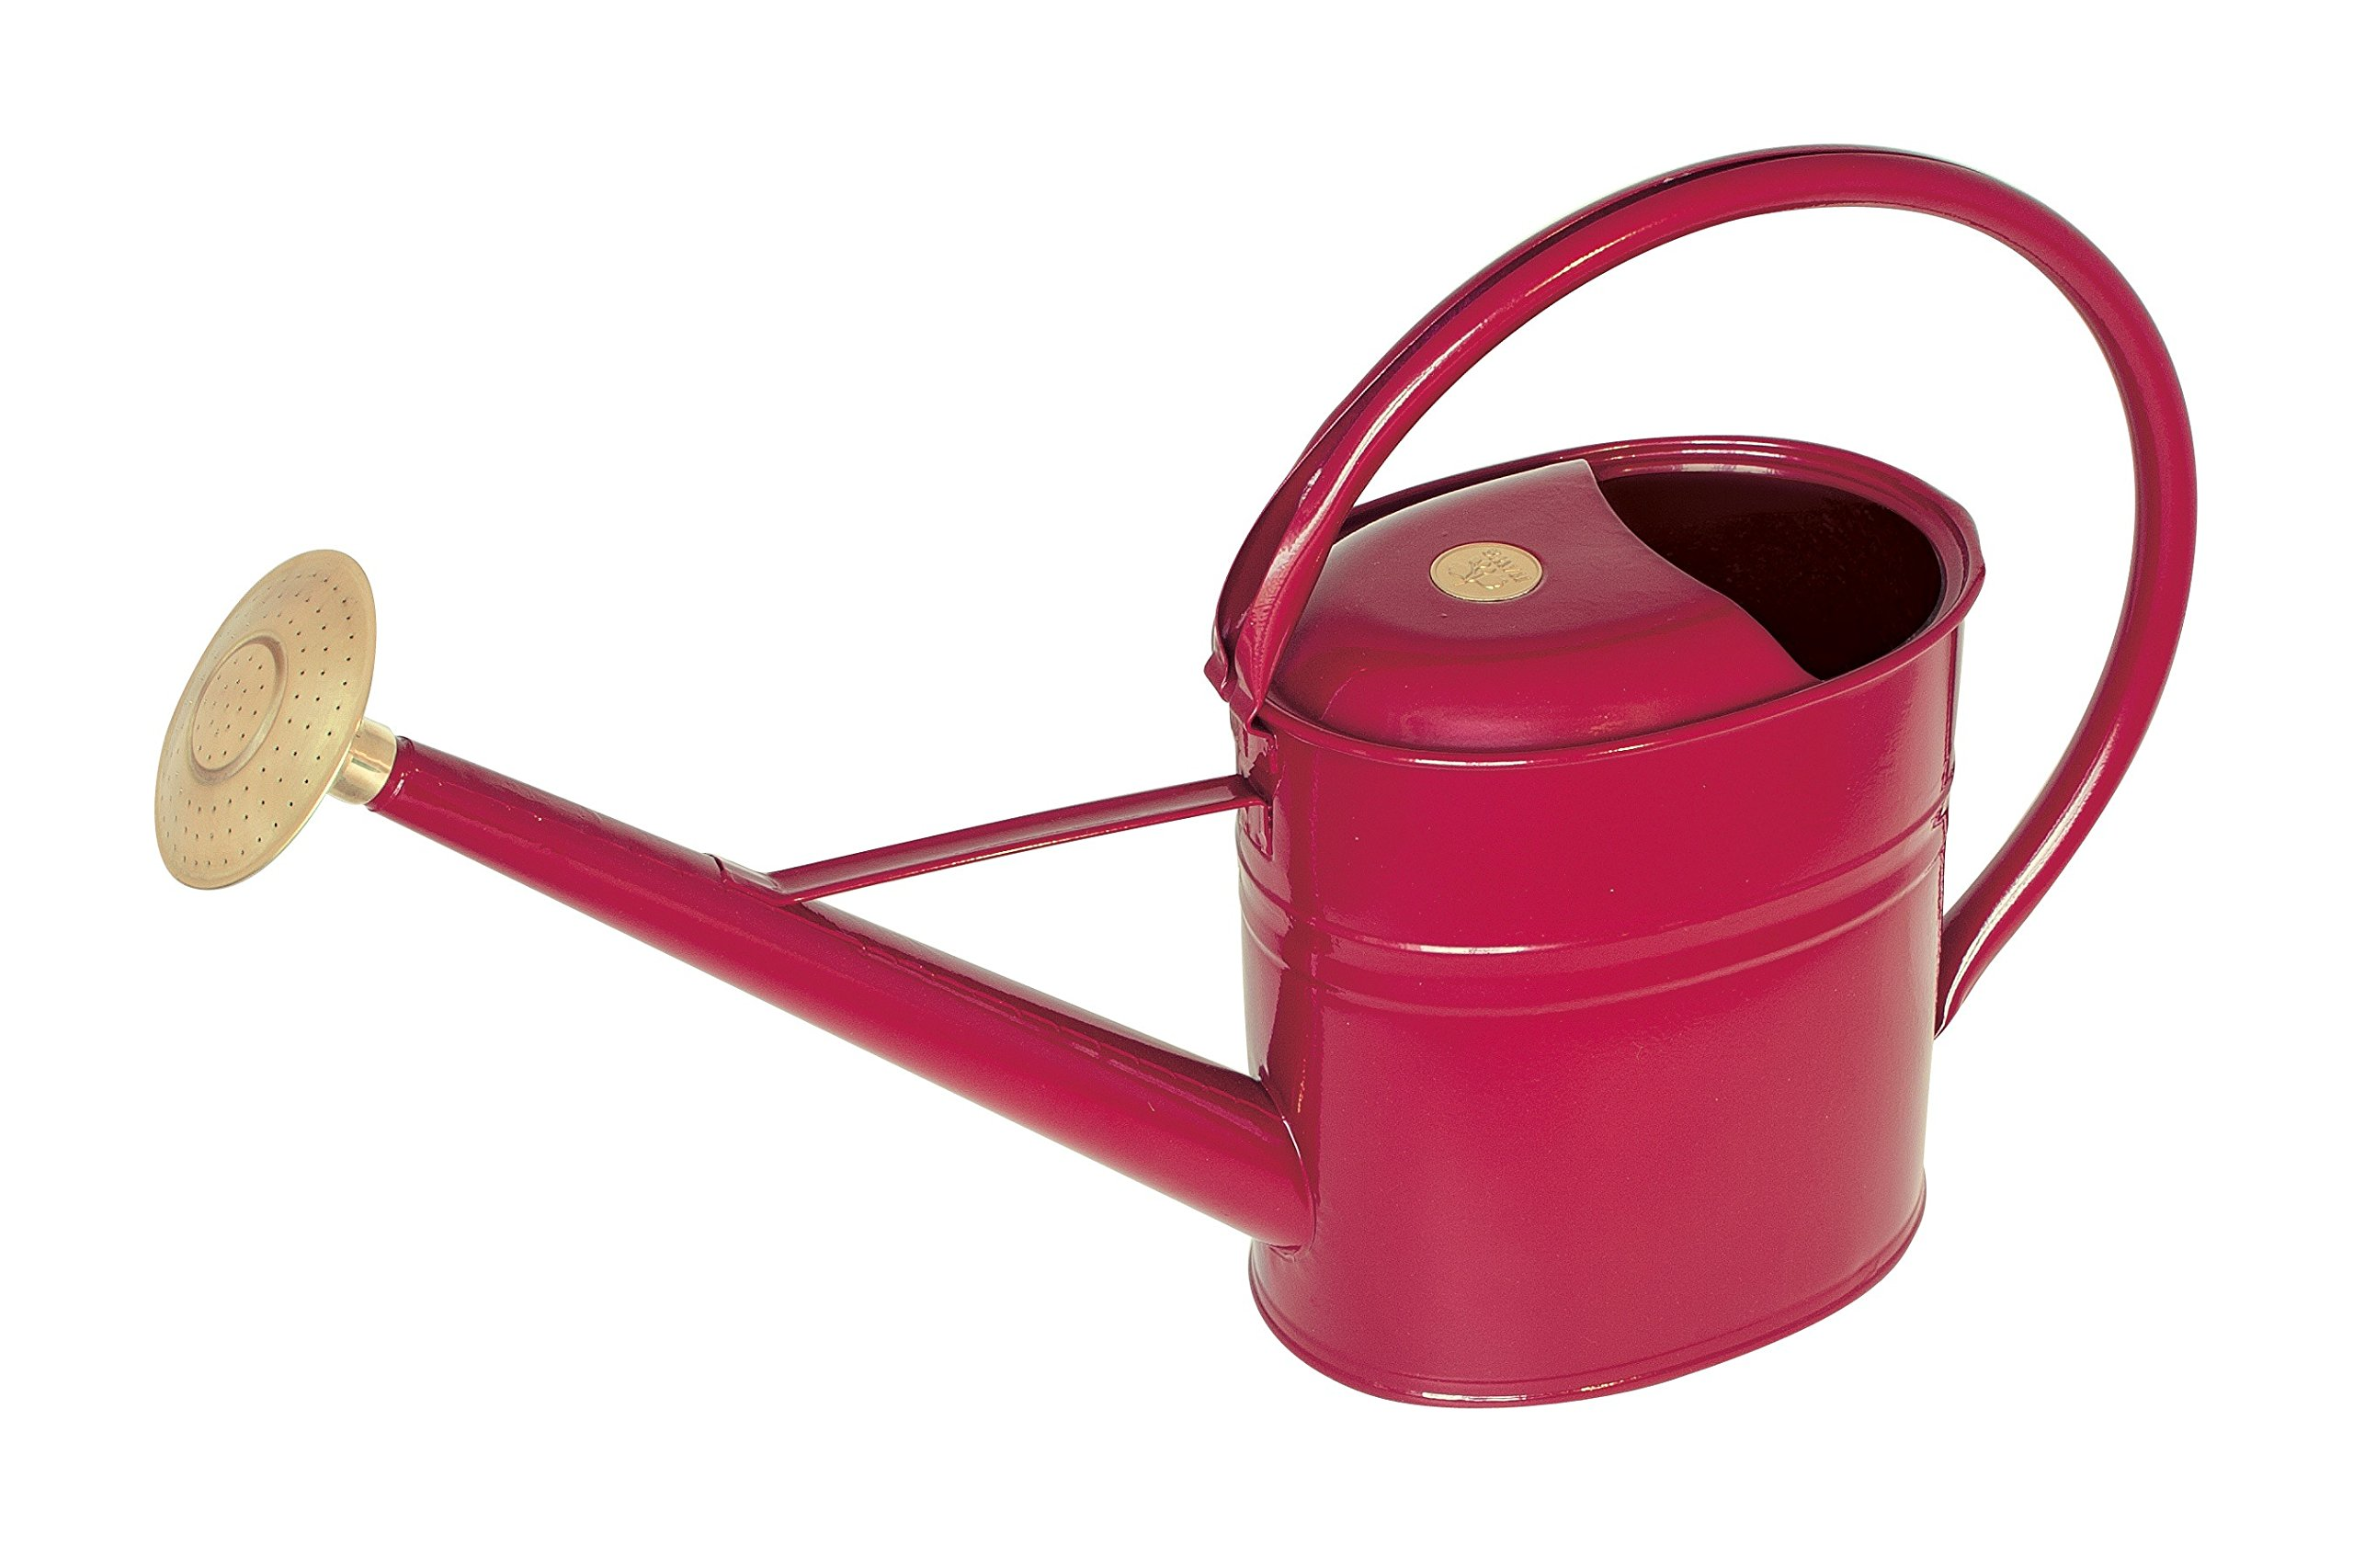 Haws Slimcan Metal Watering Can with Round Rose, 2-Gallon/8-Liter, Burgundy